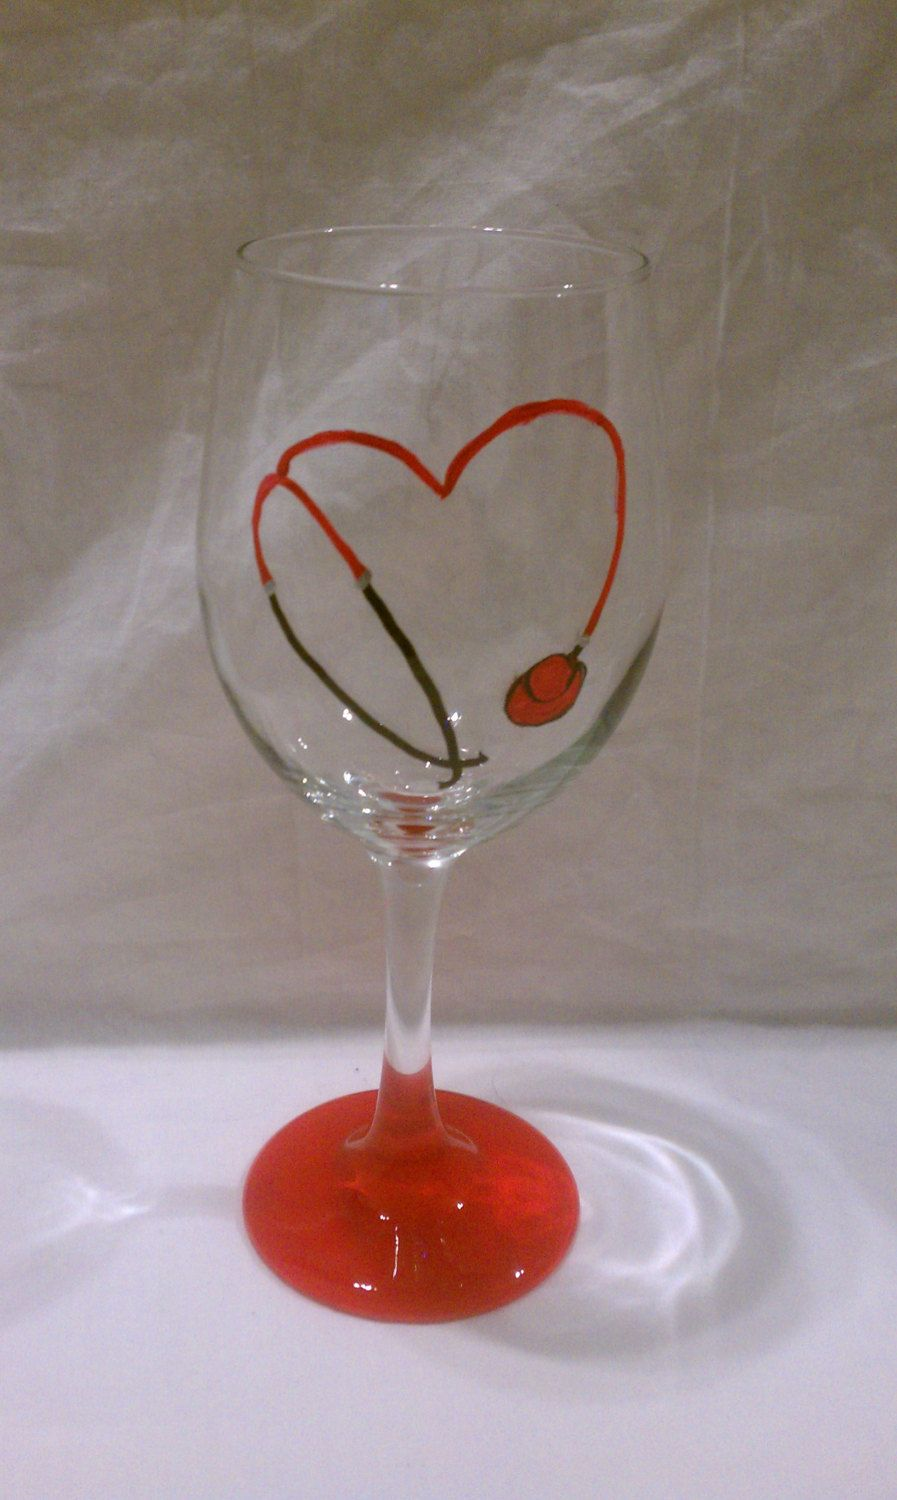 40 Artistic Wine Glass Painting Ideas | Painted wine glass